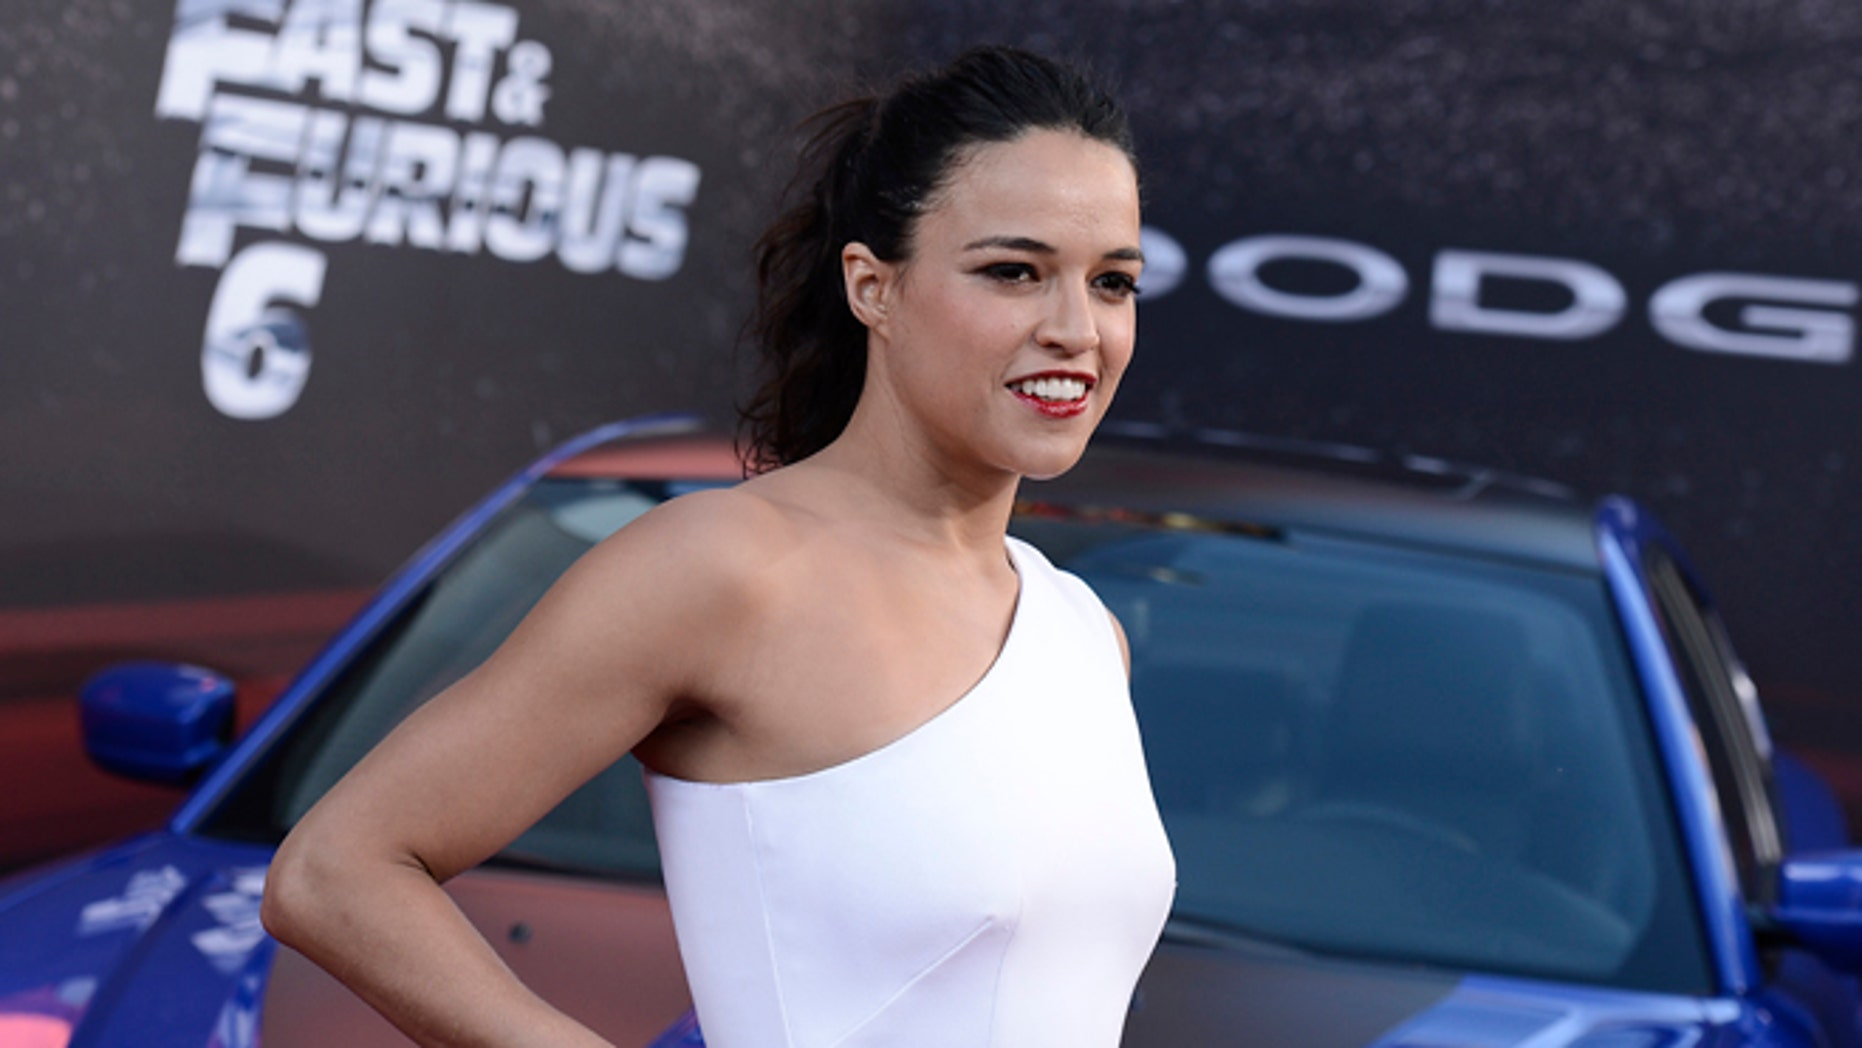 """Actress Michelle Rodriguez arrives at the LA Premiere of the """"Fast & Furious 6"""" at the Gibson Amphitheatre on Tuesday, May 21, 2013 in Universal City, Calif. (Photo by Dan Steinberg/Invision/AP)"""